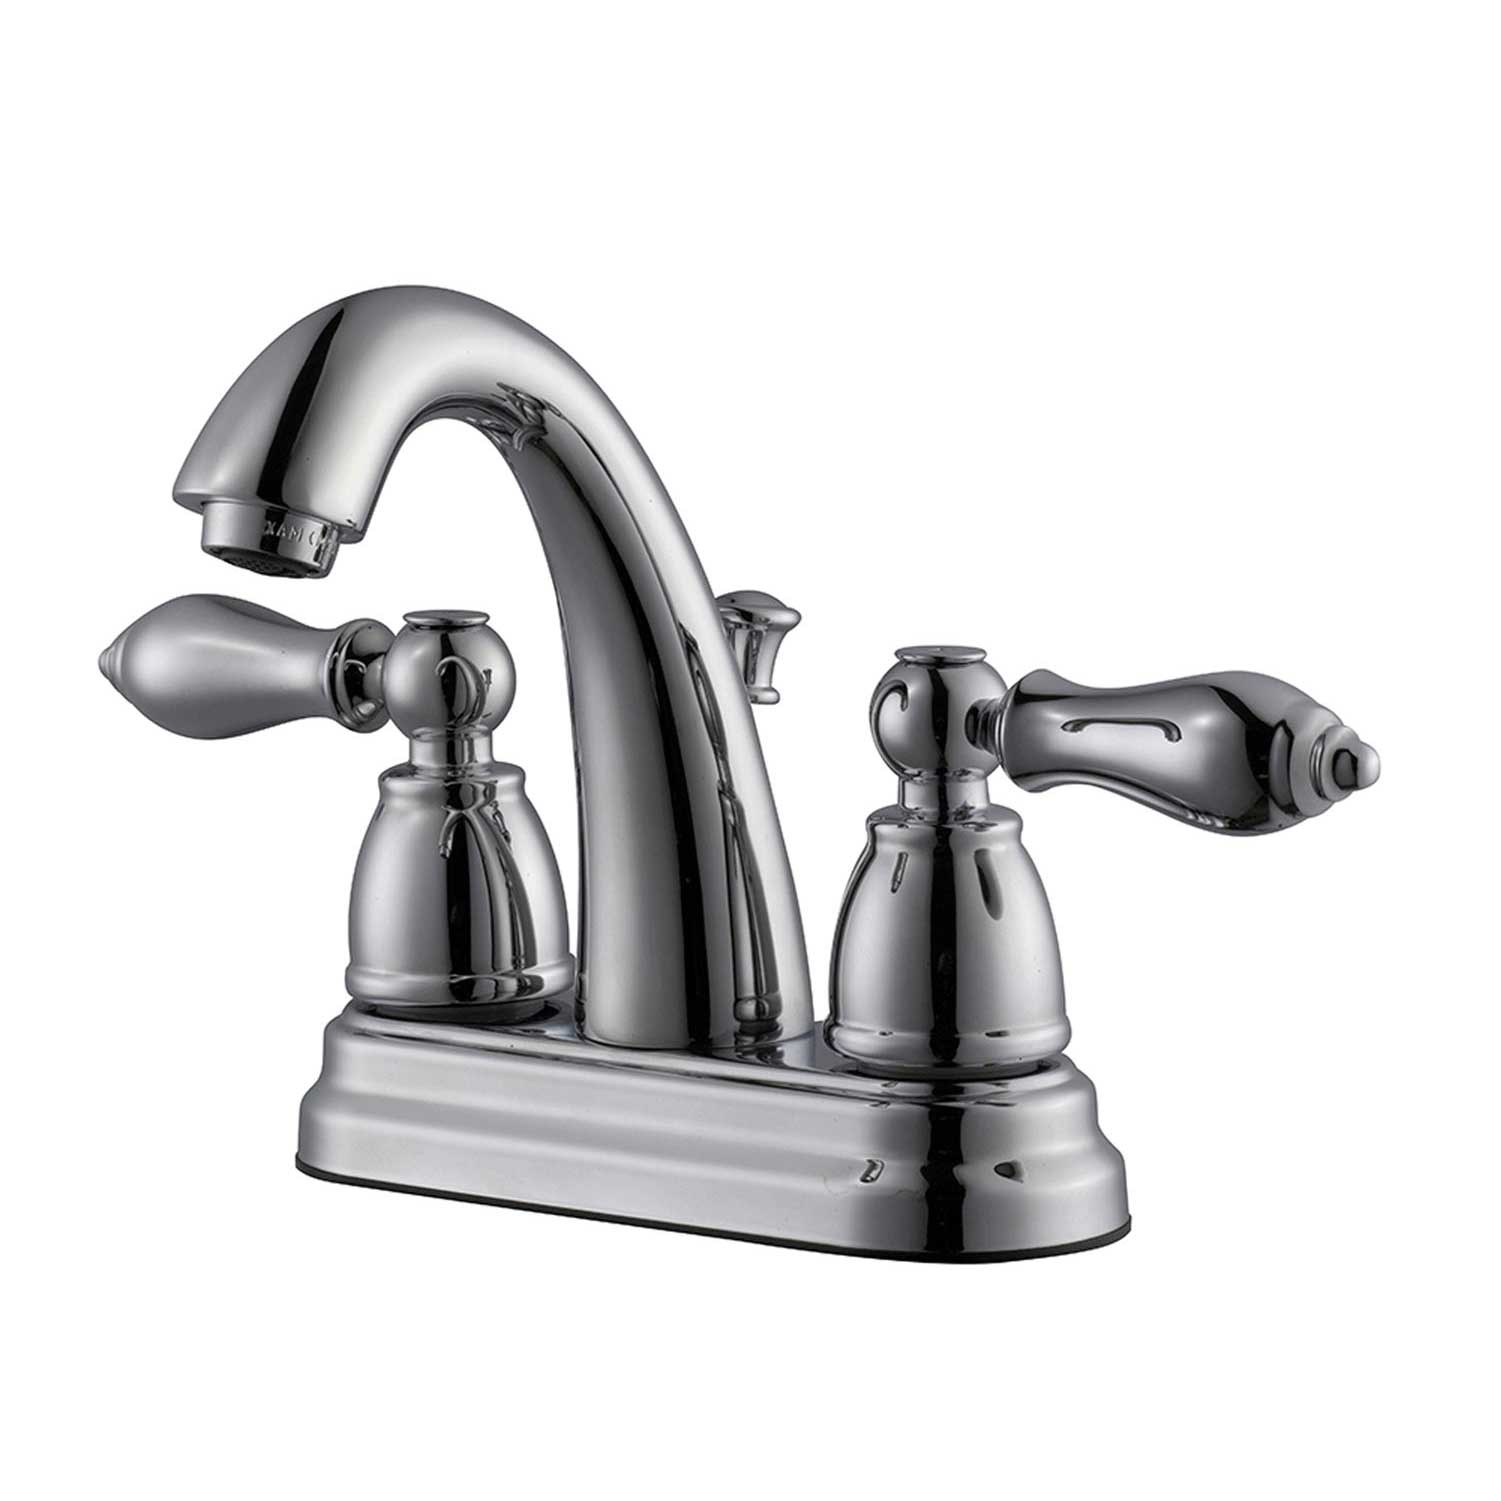 Design House Hathaway Lavatory Faucet, Polished Chrome - 545673